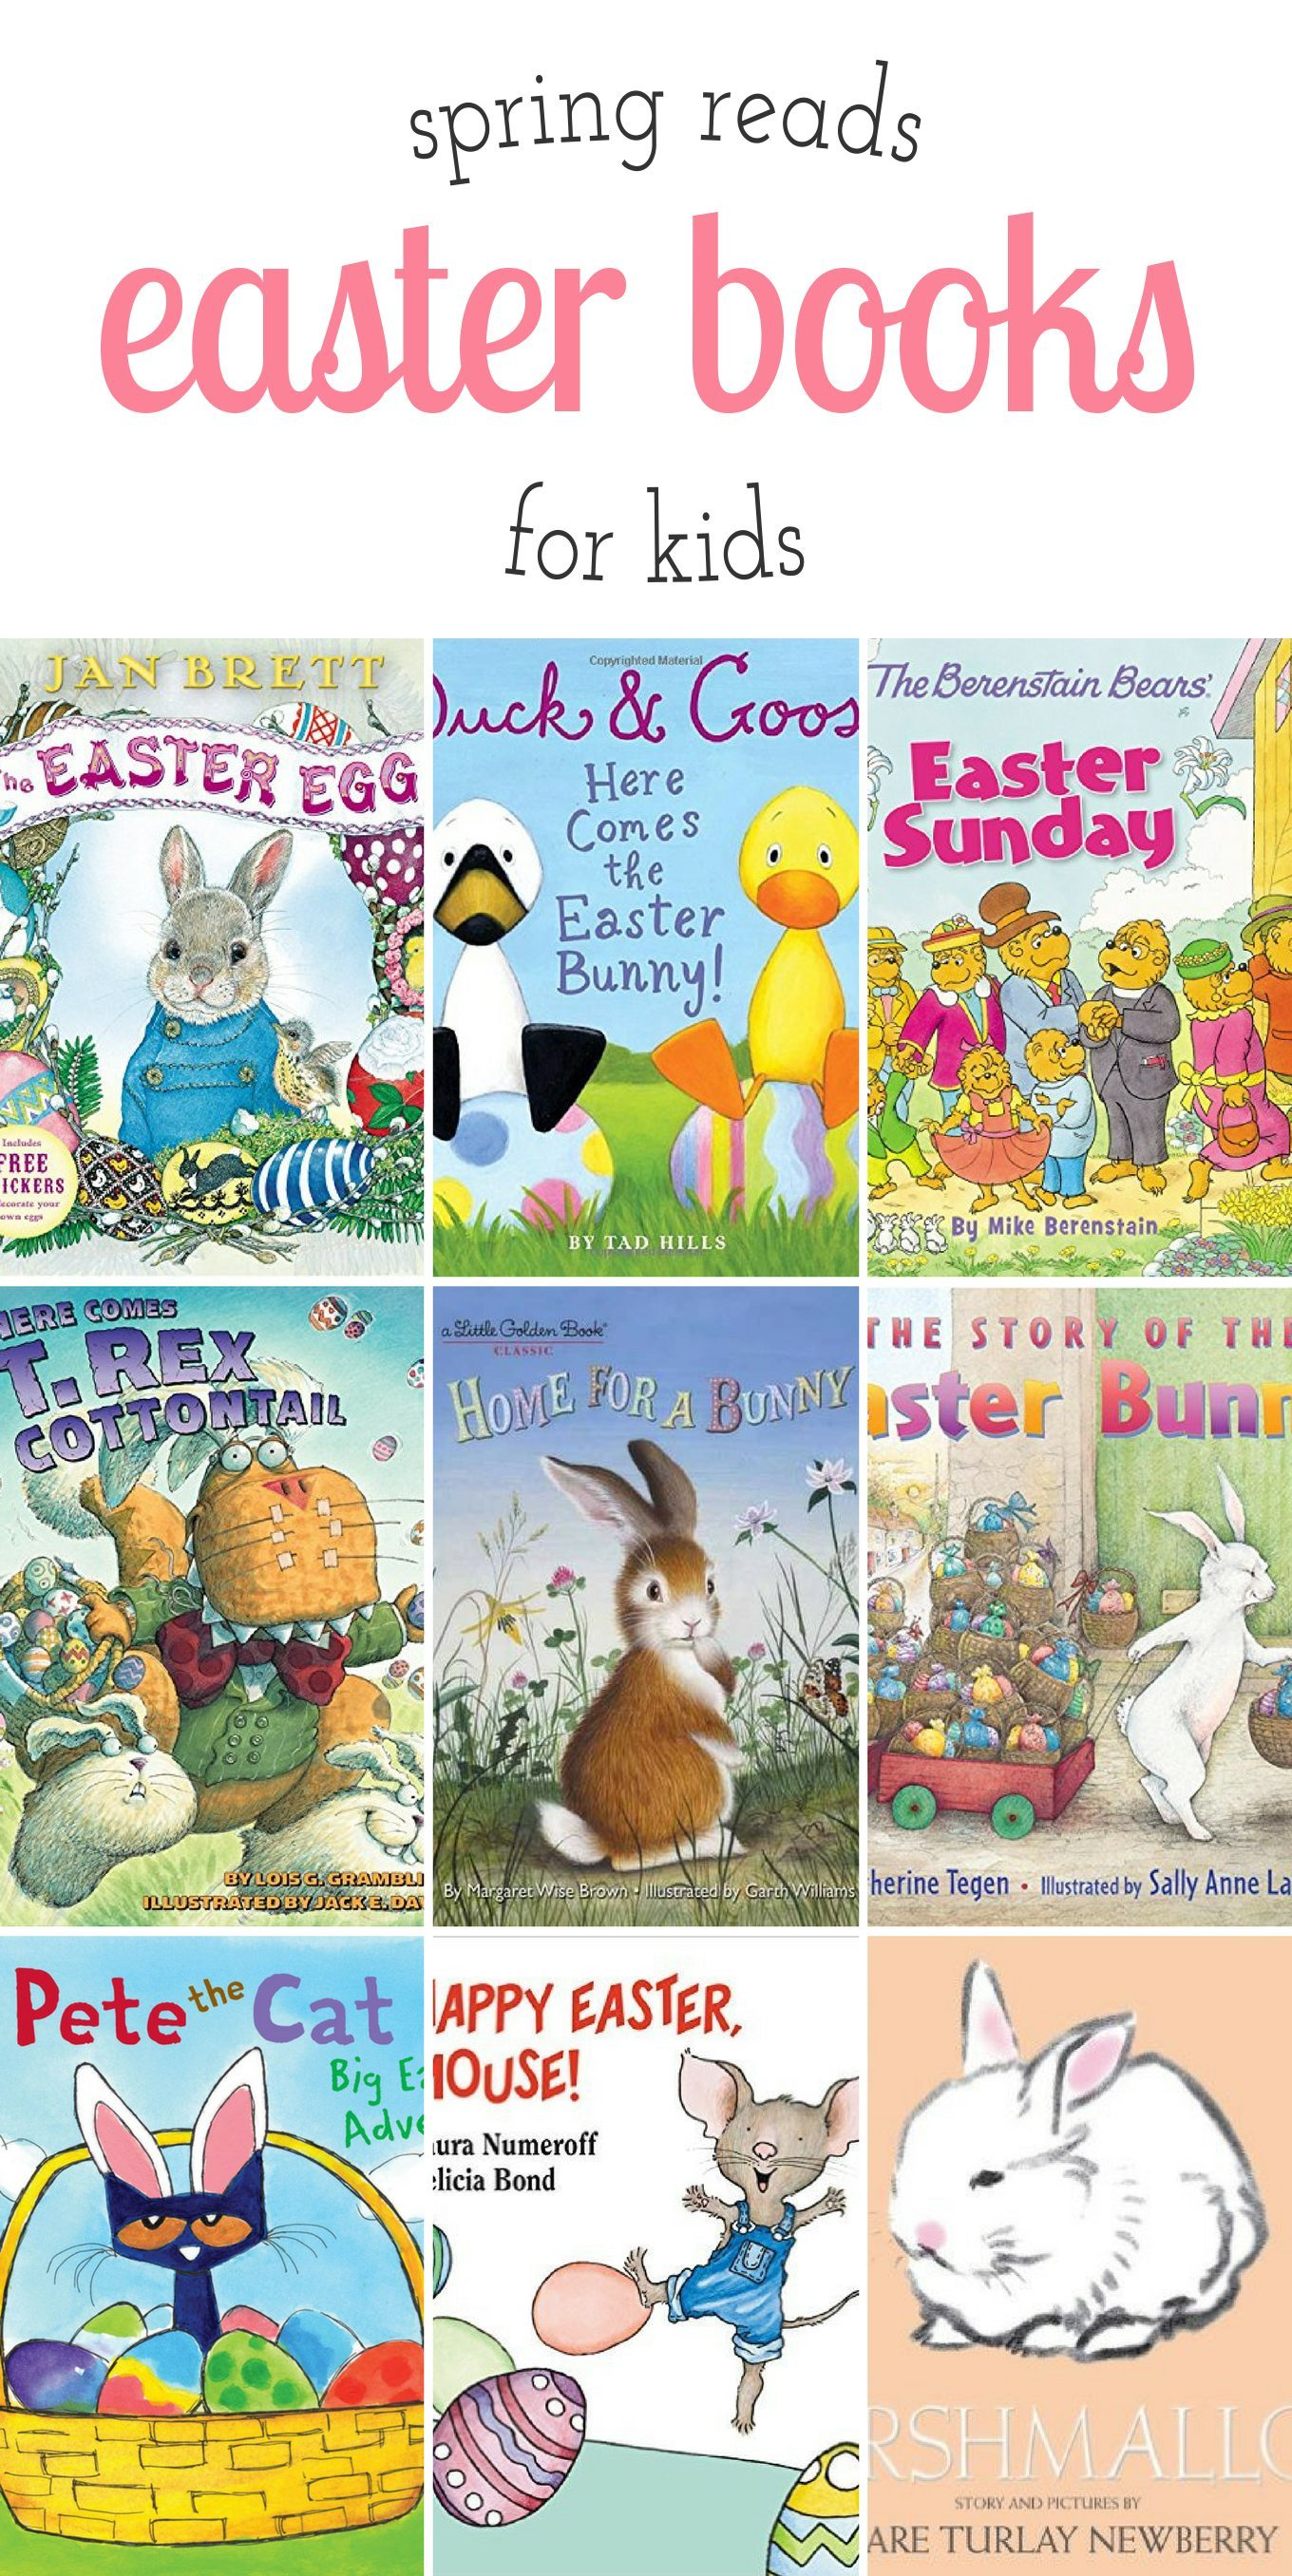 Spring Reads: The Best Easter Books for Kids